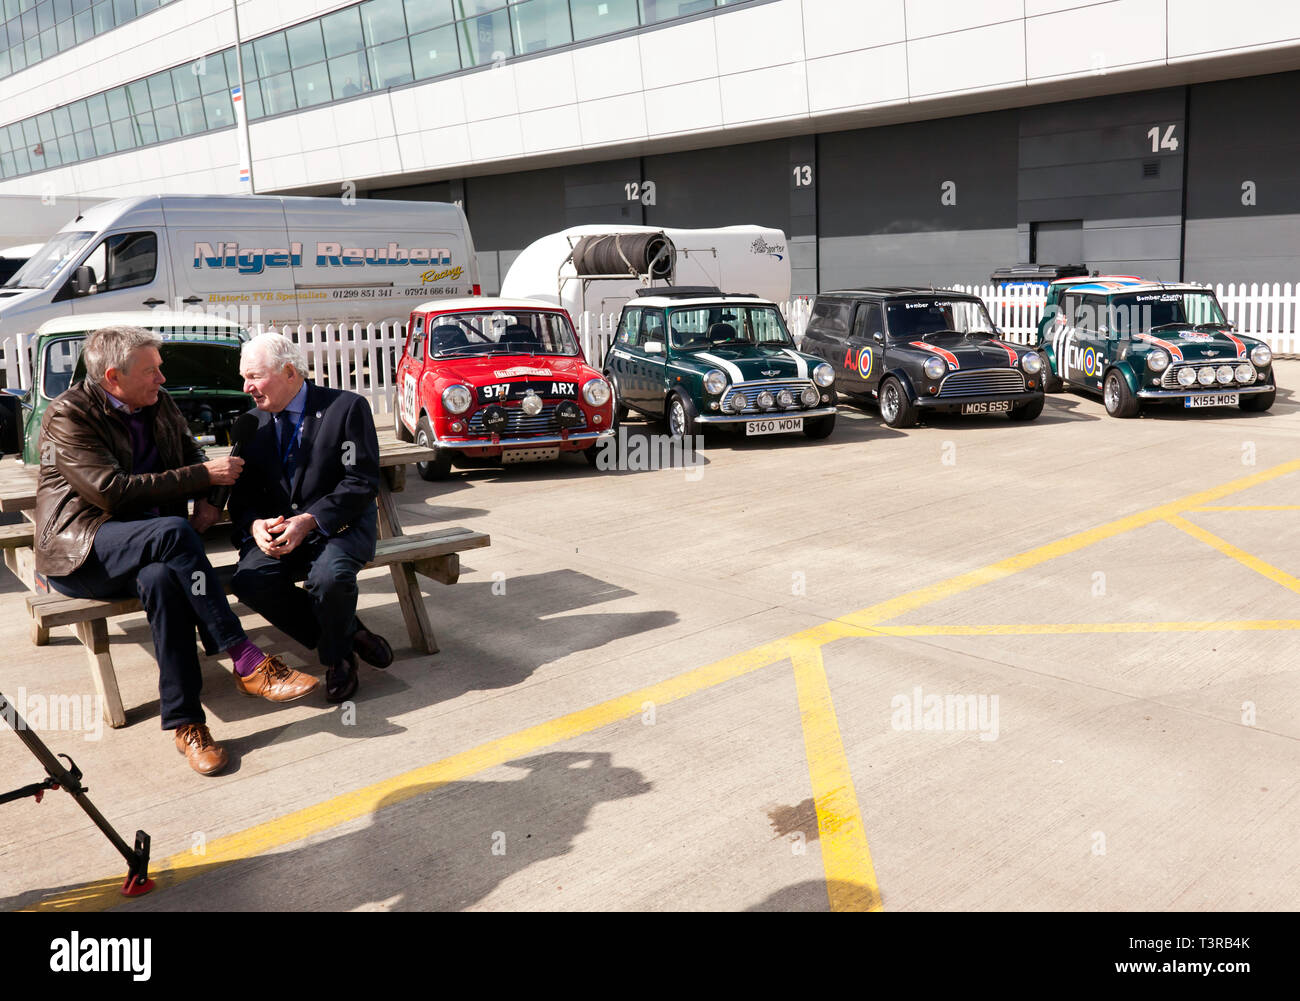 Tiff Needell interviewing mini rallying legend Paddy Hopkirk MBE, in